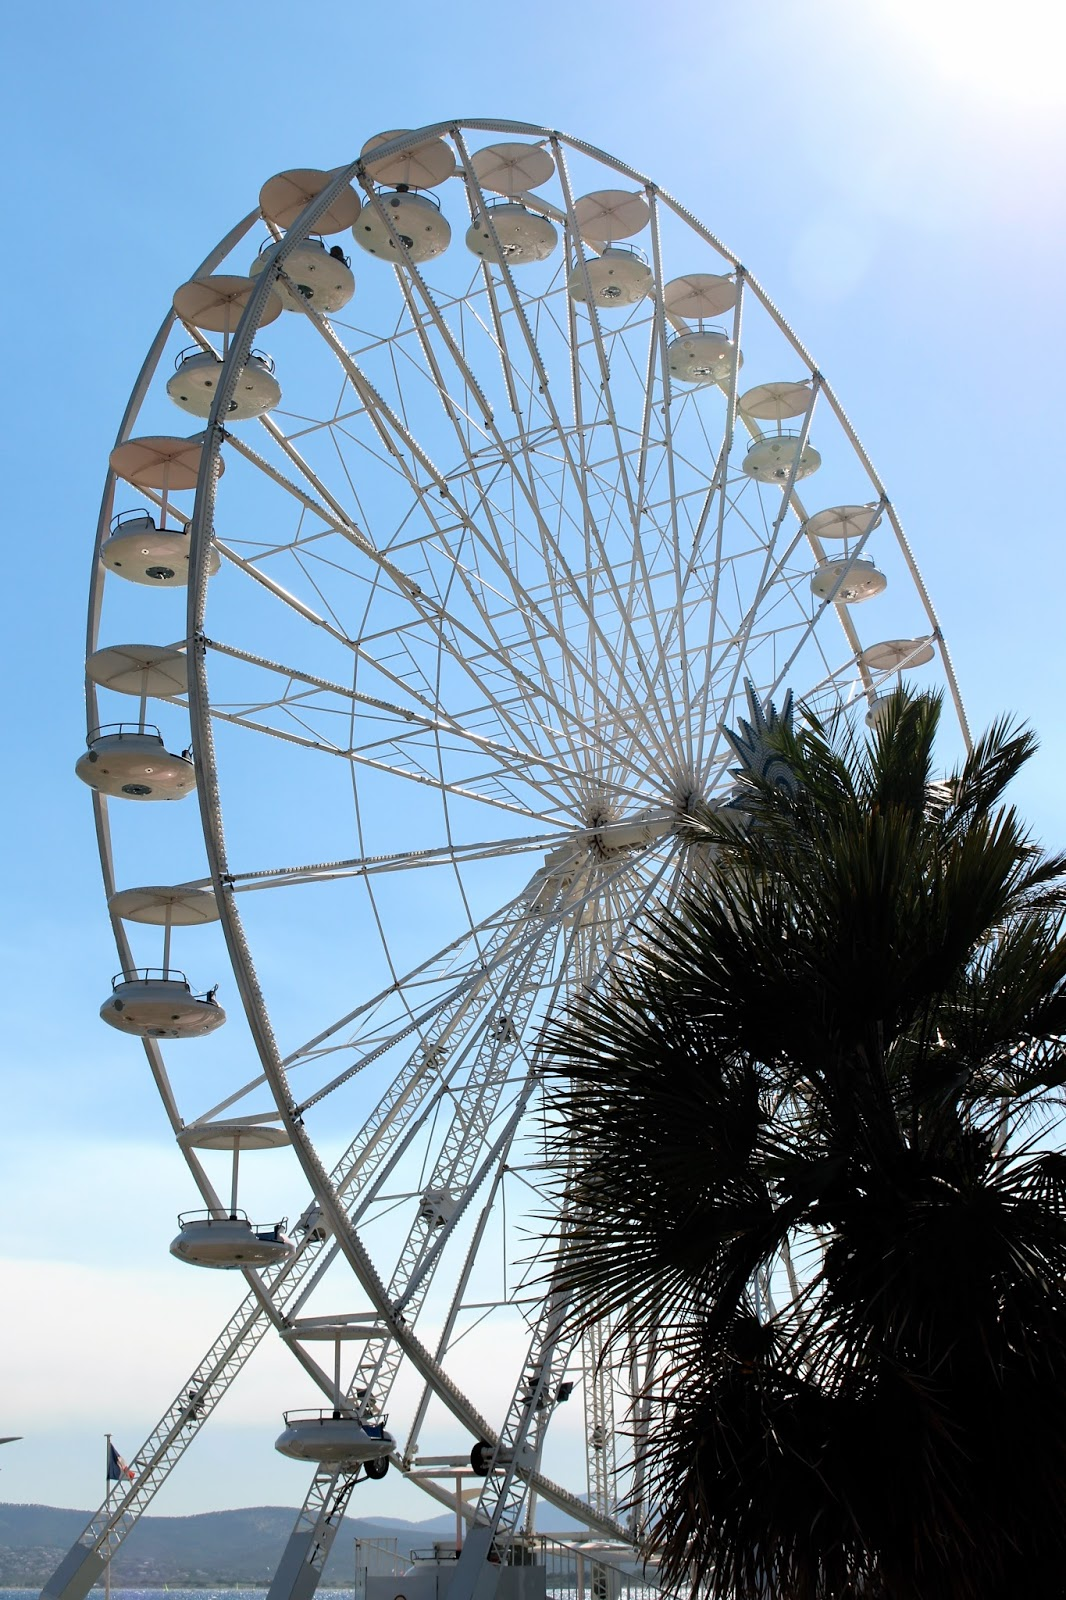 Saint Raphaël ferris wheel